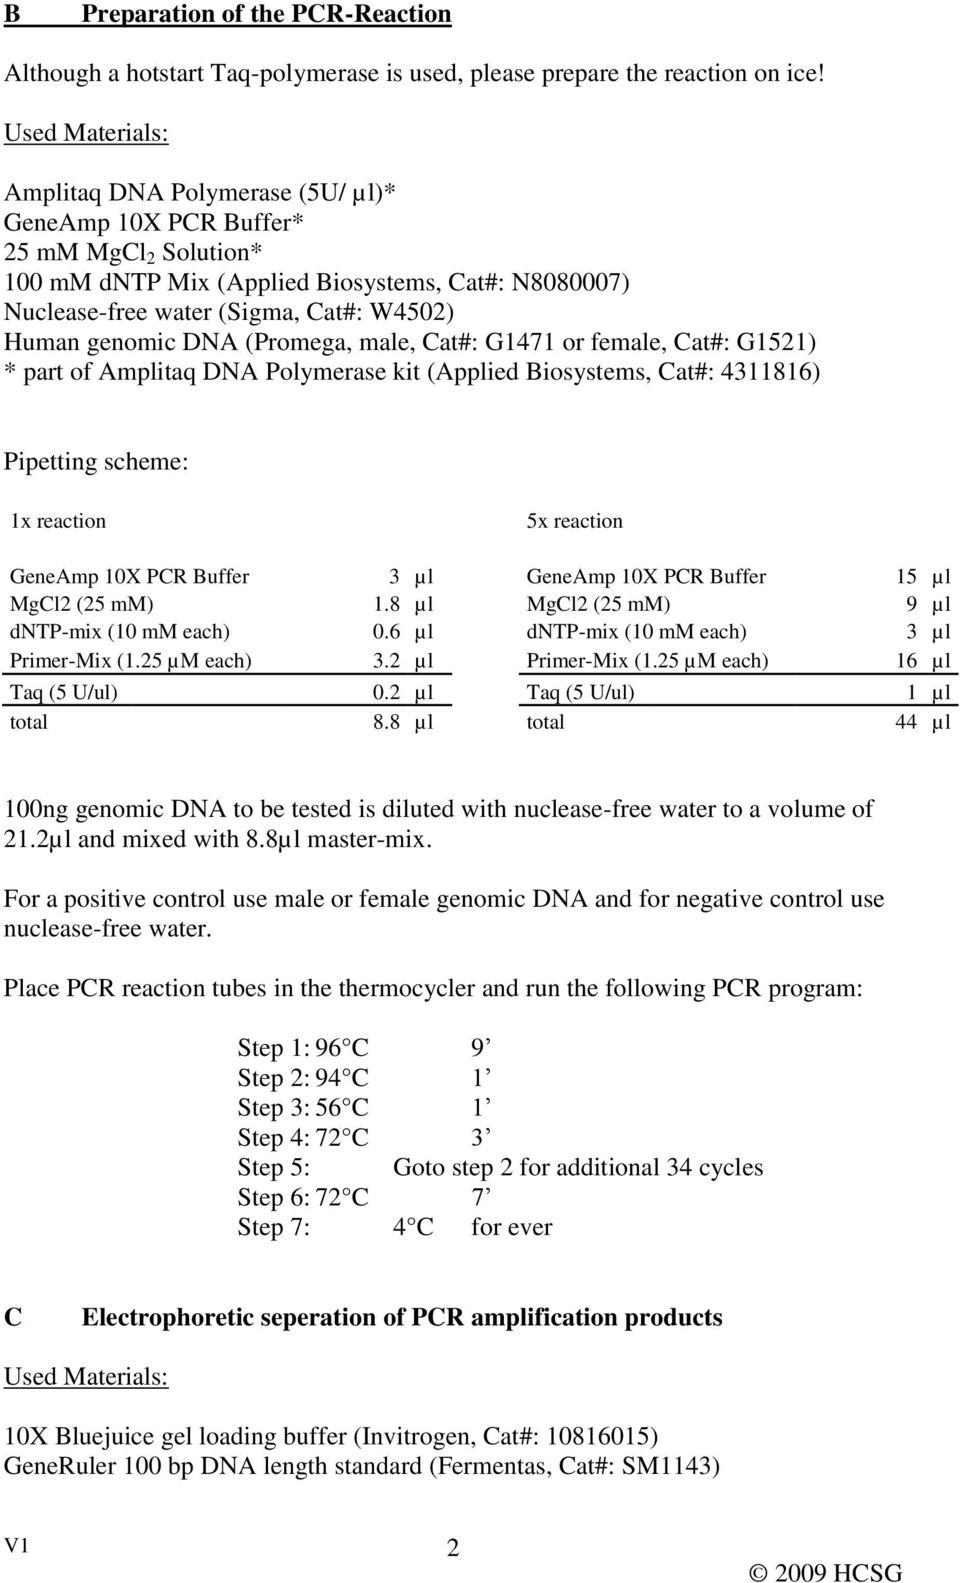 genomic DNA (Promega, male, Cat#: G1471 or female, Cat#: G1521) * part of Amplitaq DNA Polymerase kit (Applied Biosystems, Cat#: 4311816) Pipetting scheme: 1x reaction 5x reaction GeneAmp 10X PCR